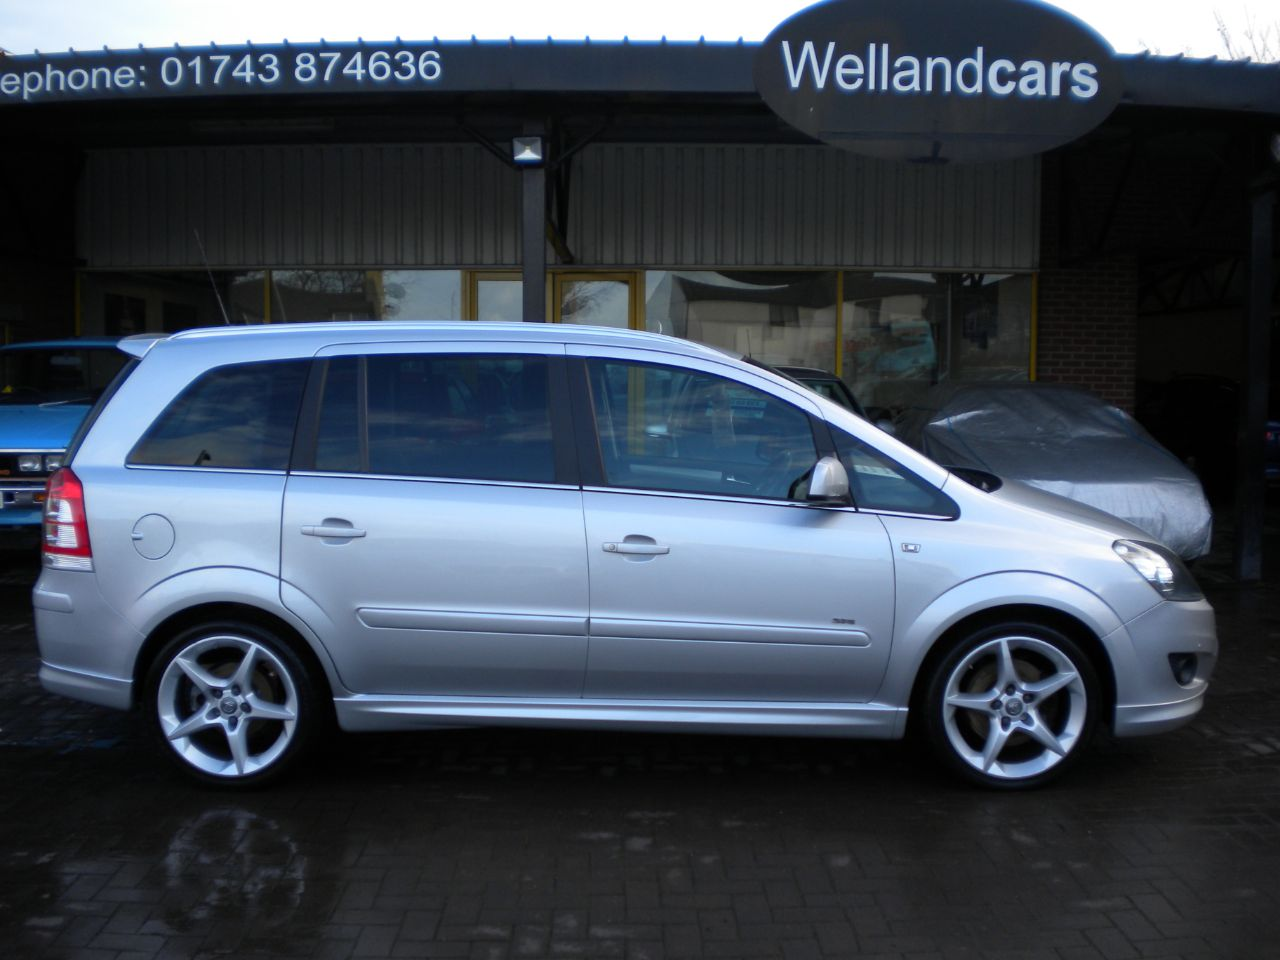 Vauxhall Zafira 1.9 CDTi SRi 150 BHP 5dr Exterior Pack 15 MONTH PARTS AND LABOUR WARRANTY INCLUDED MPV Diesel Silver at Welland Cars Shrewsbury